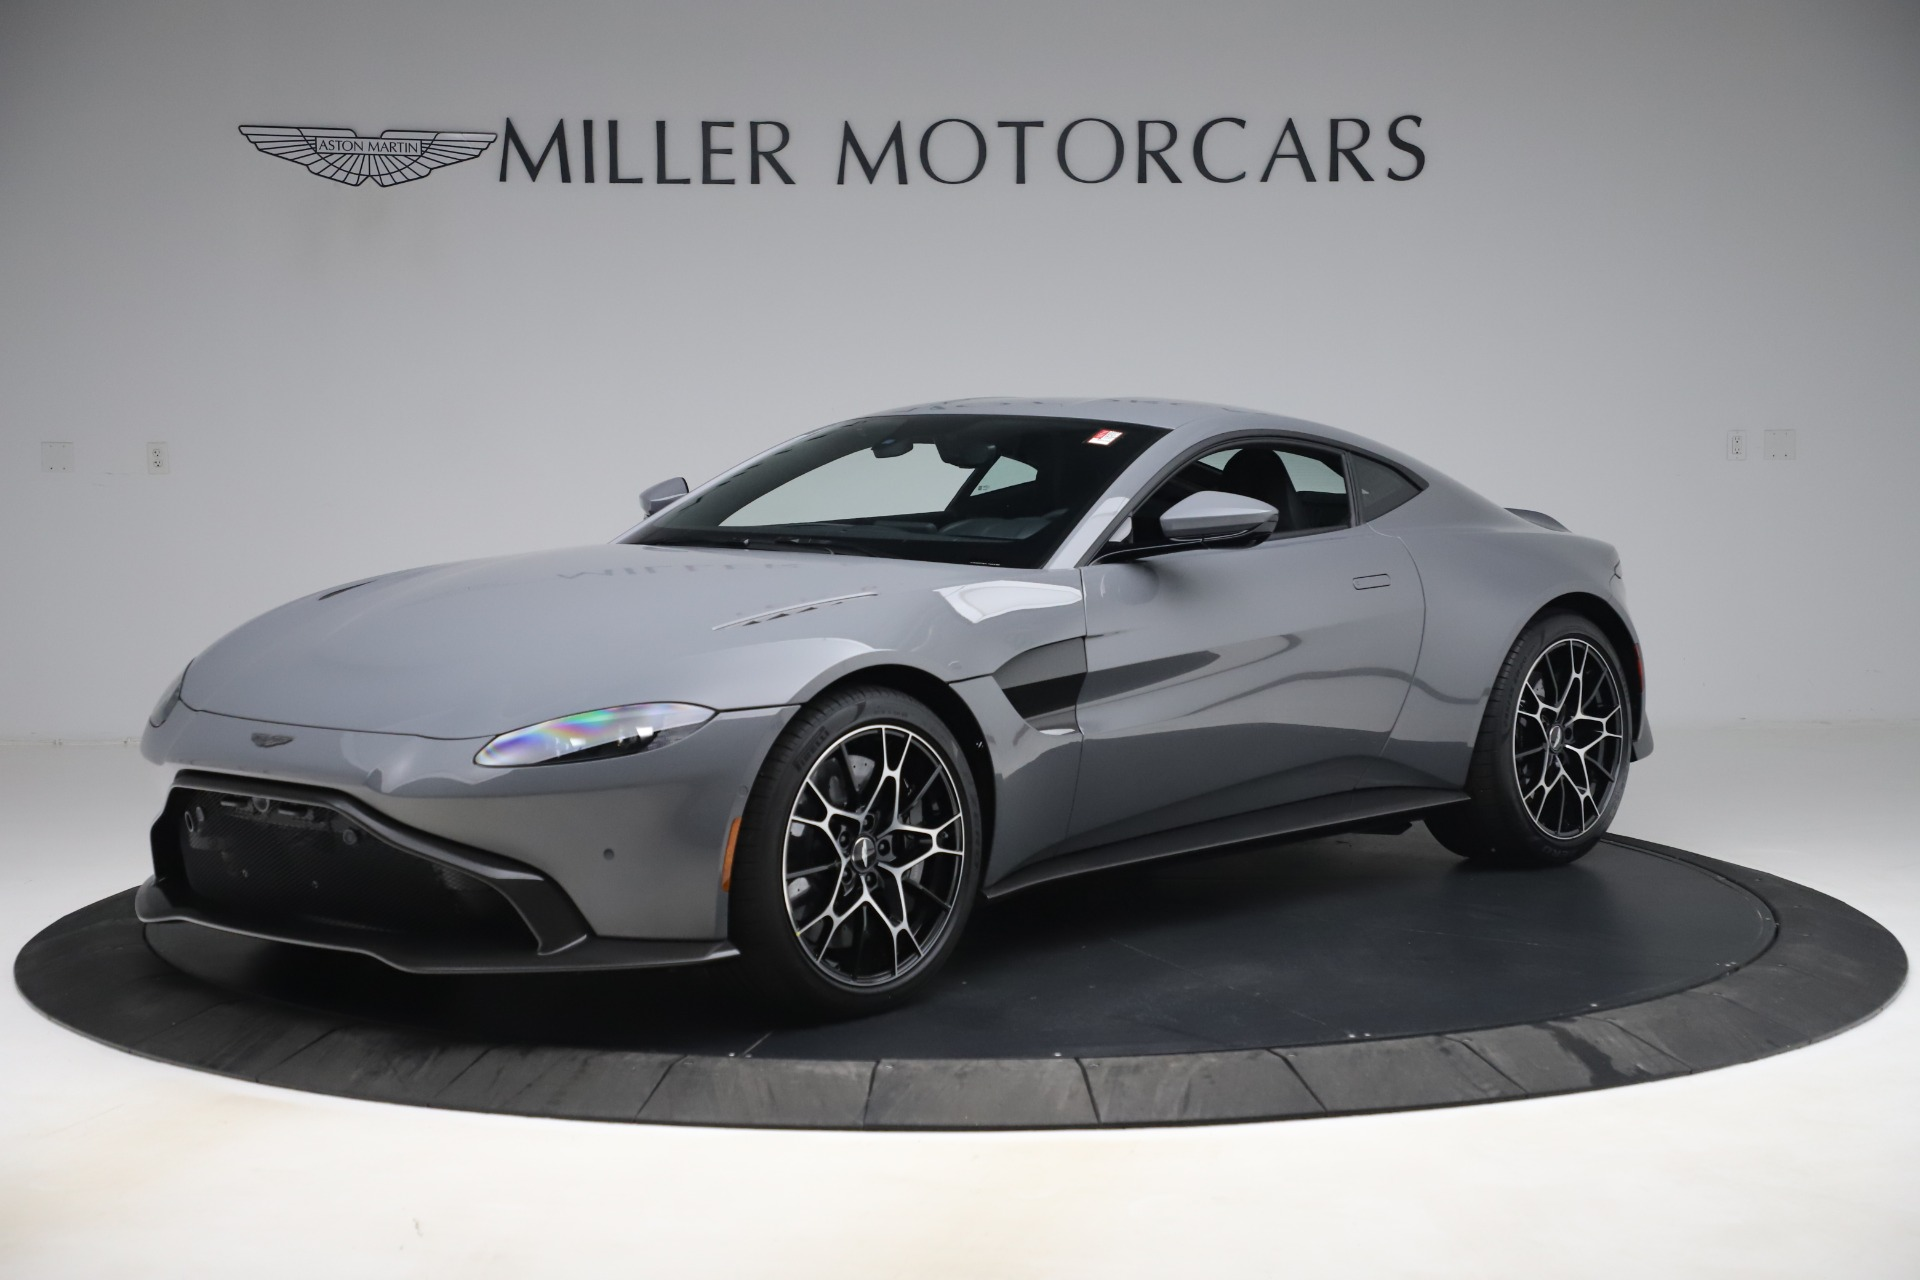 Used 2020 Aston Martin Vantage AMR Coupe for sale Sold at Aston Martin of Greenwich in Greenwich CT 06830 1